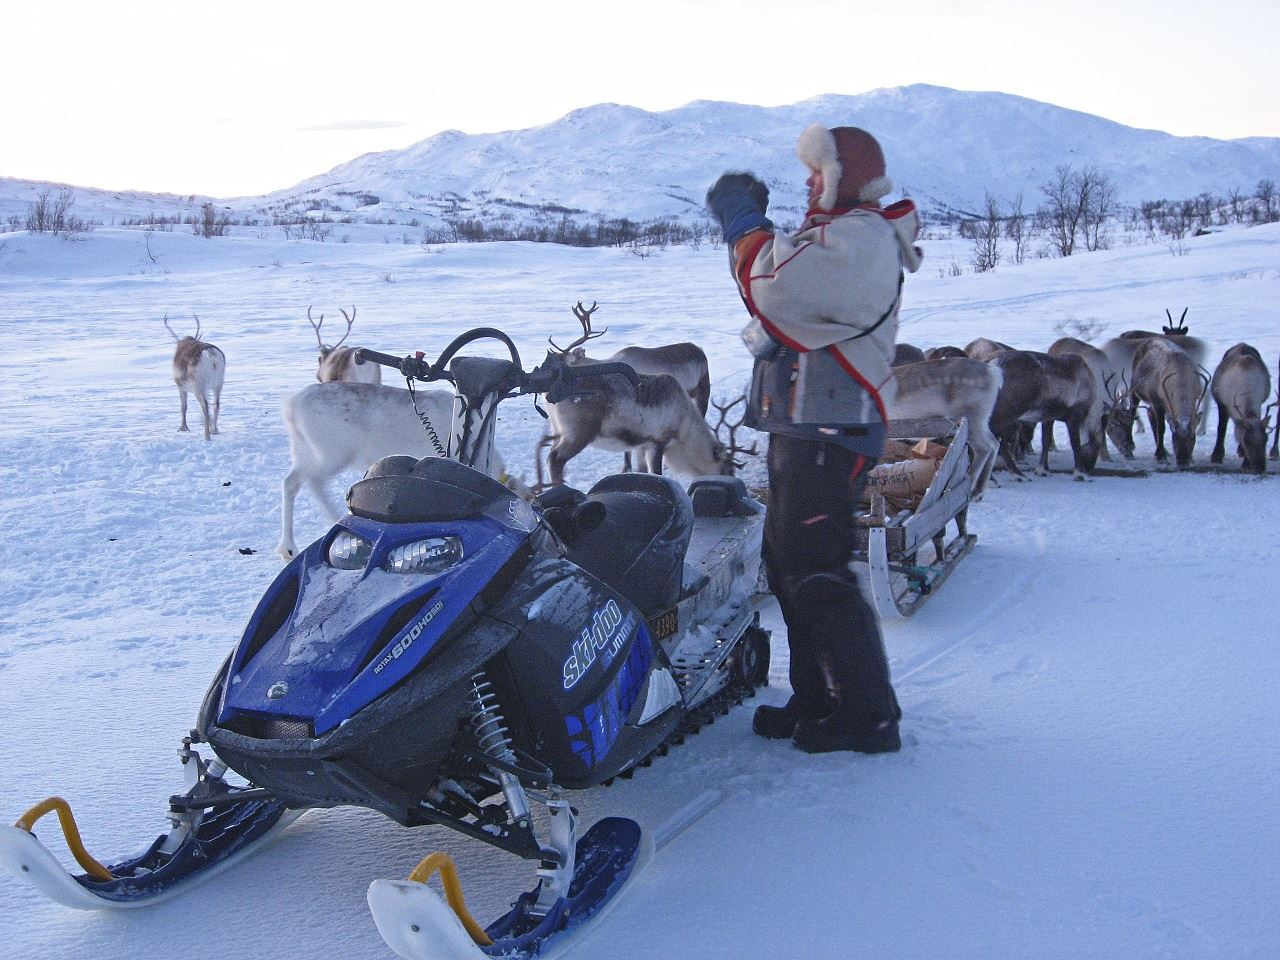 By Snowmobile to Mountain Where Reindeer Herd Walks Free – Arctic Guide Service